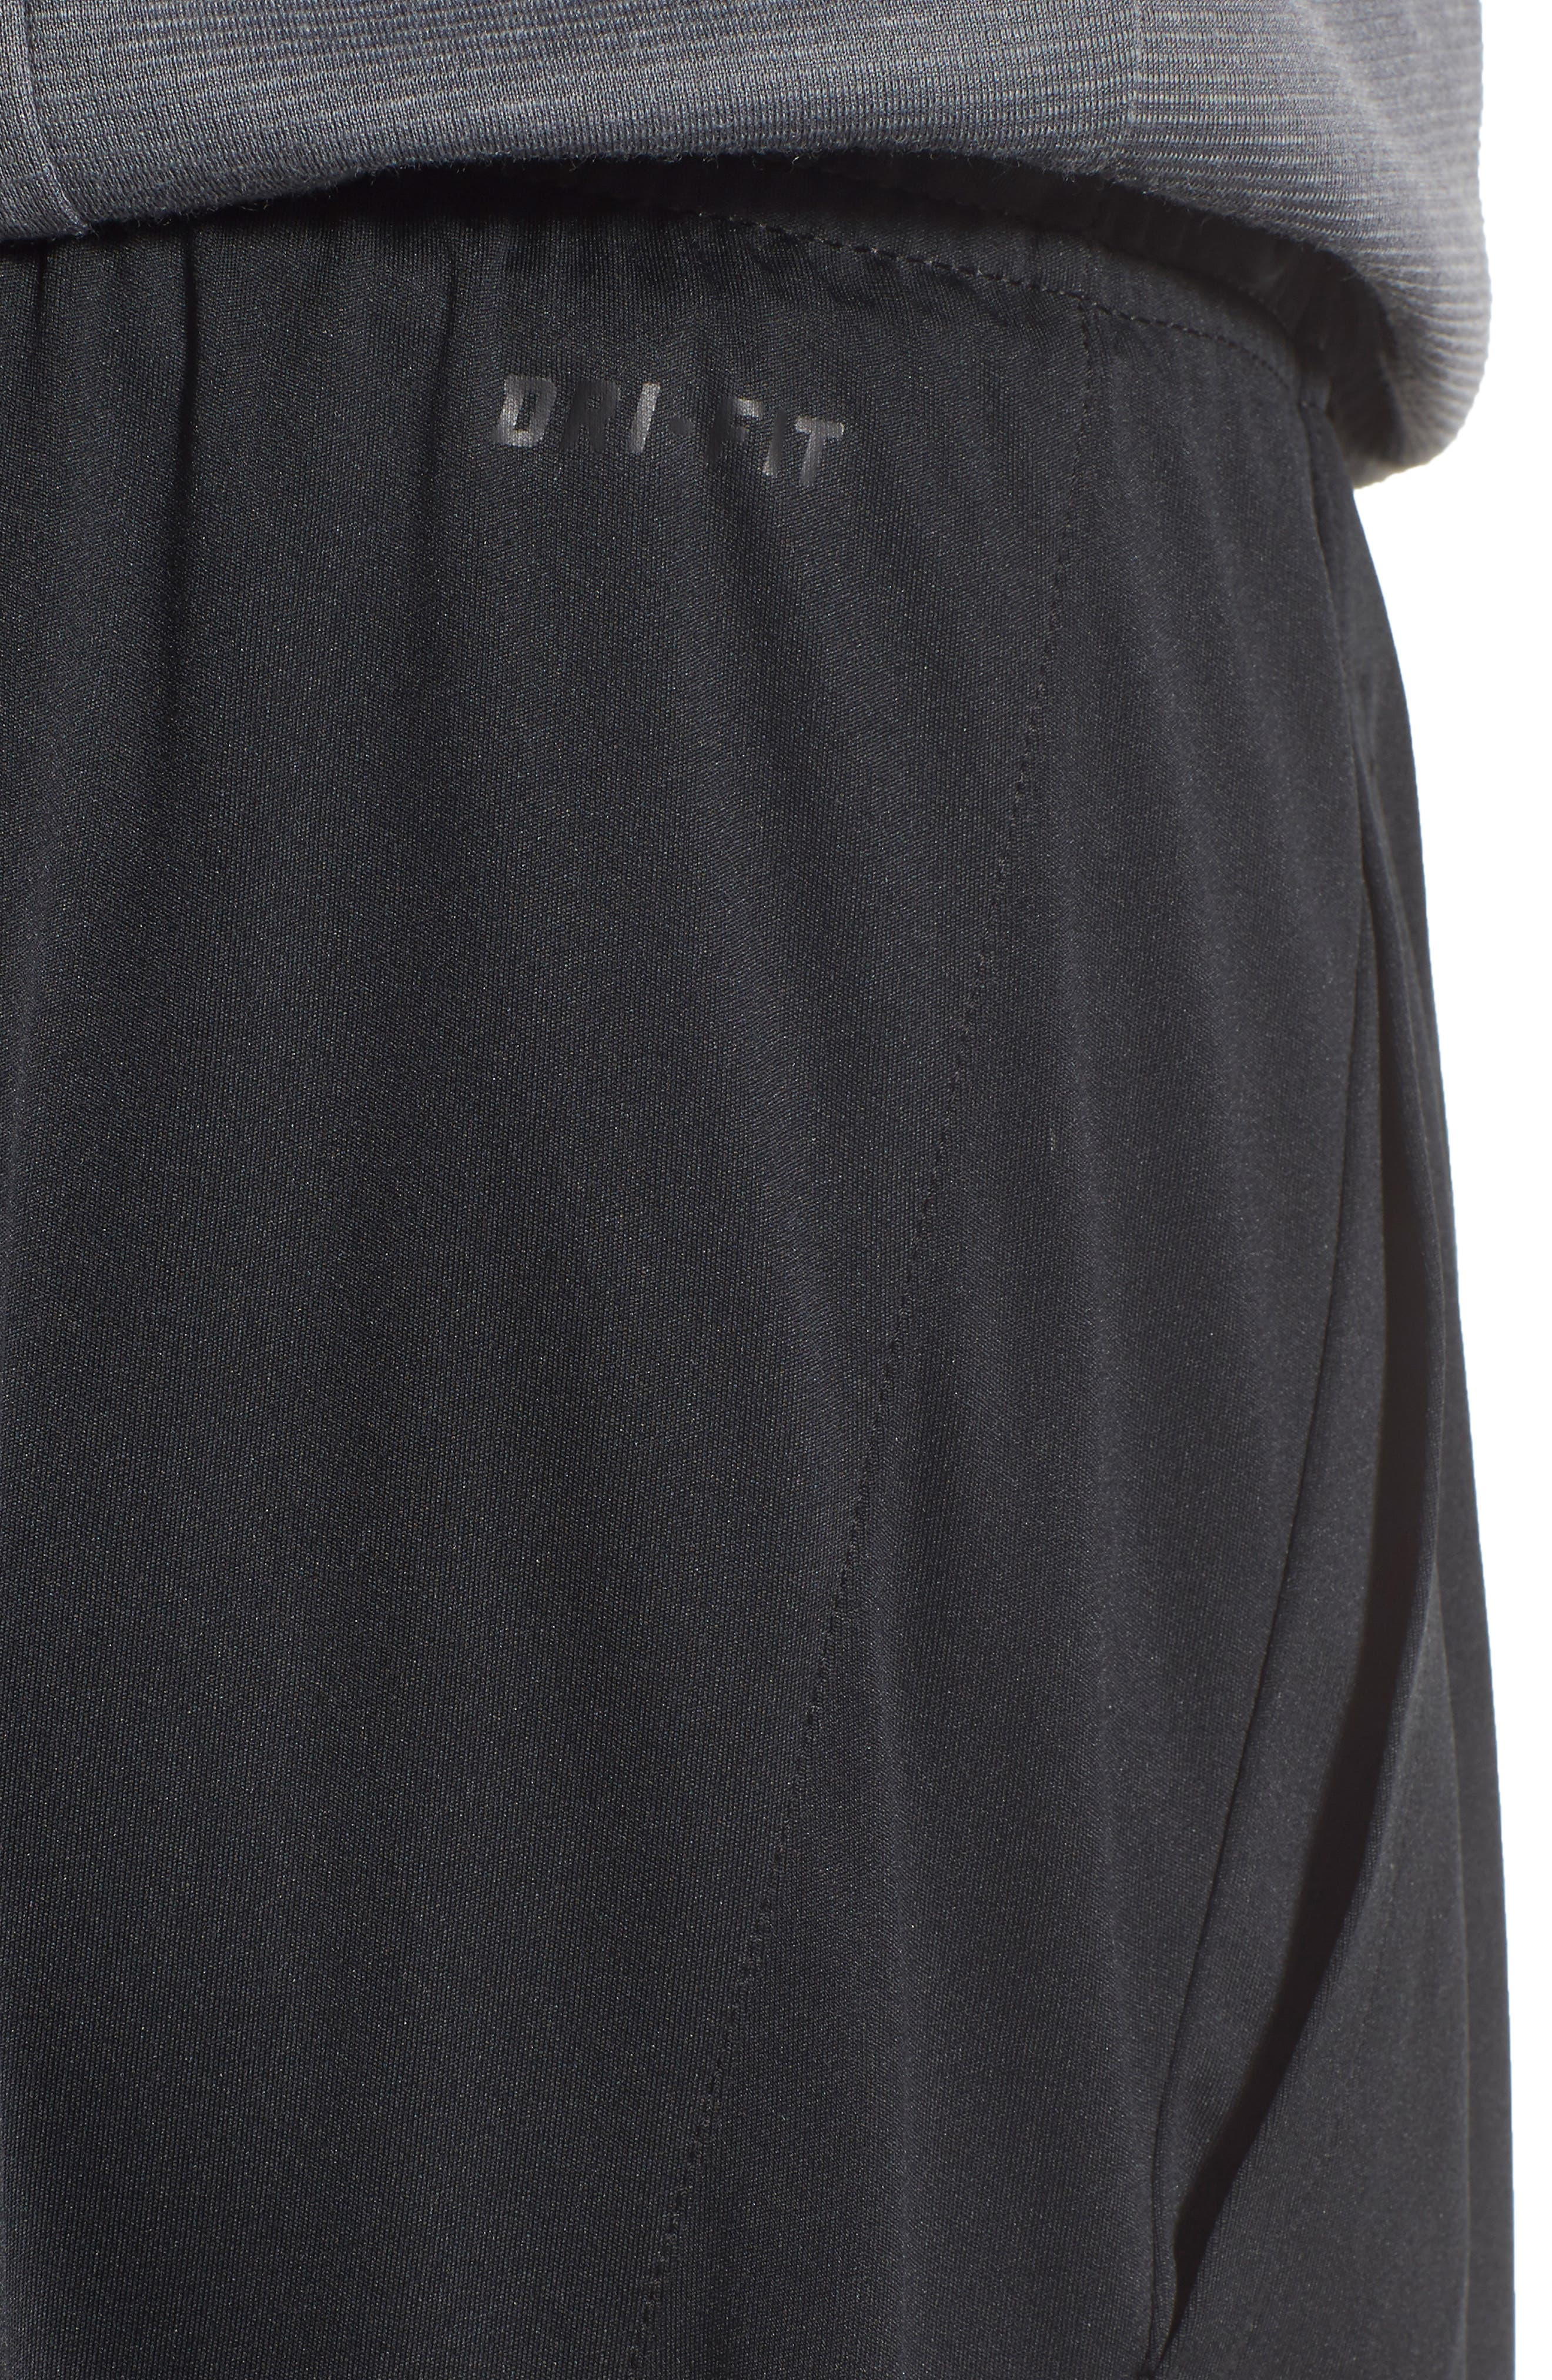 Fly Athletic Shorts,                             Alternate thumbnail 4, color,                             010